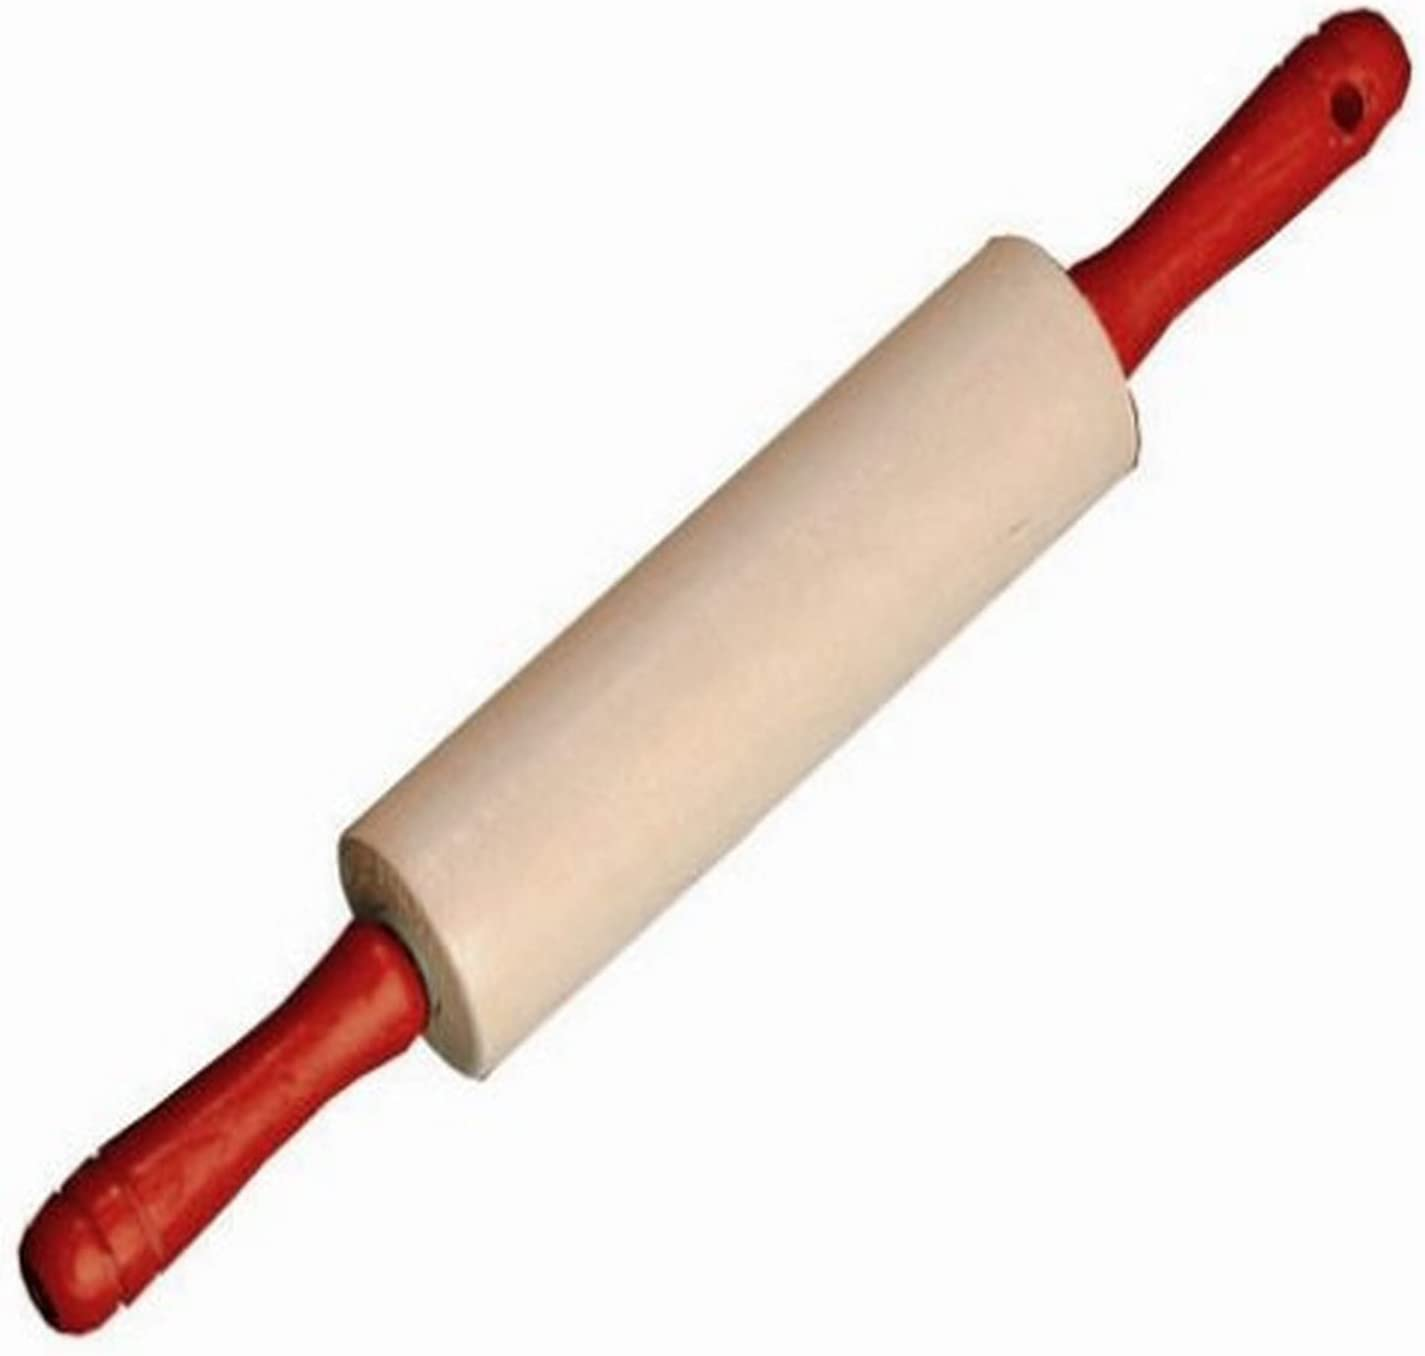 Vintage Wooden Rolling Pin Faded Red Handles